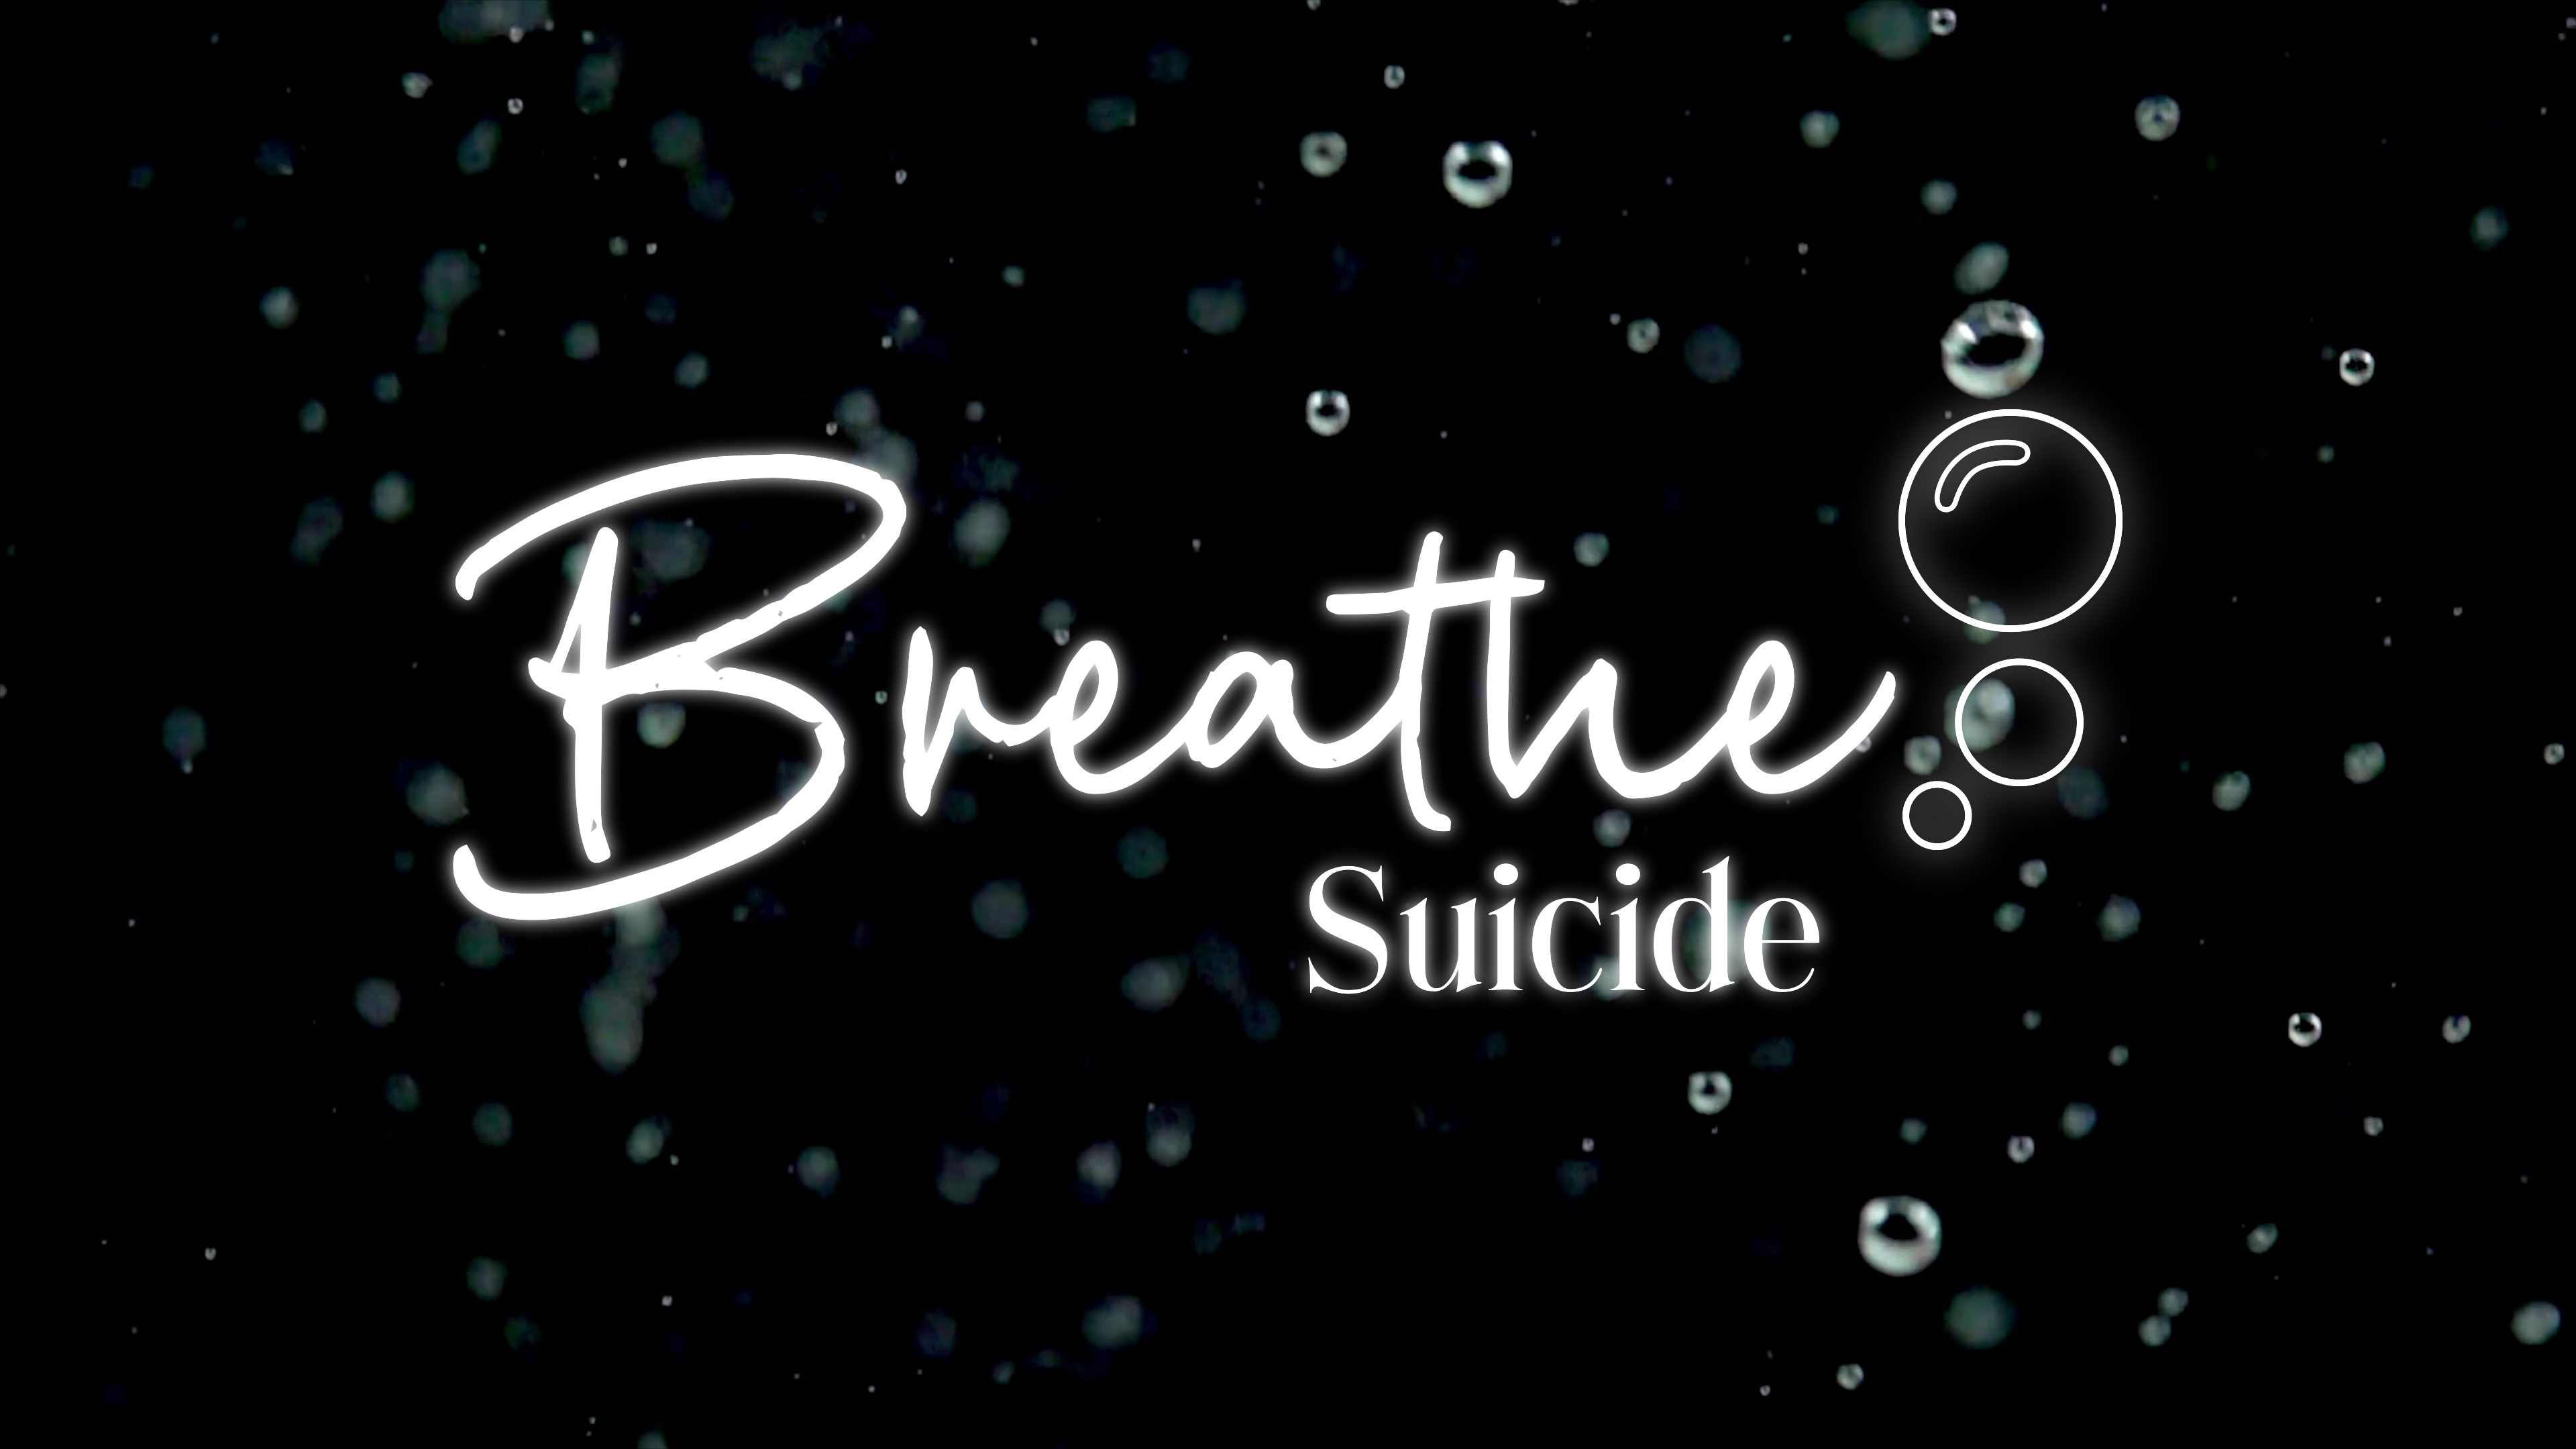 Breathe: Why Breathe?